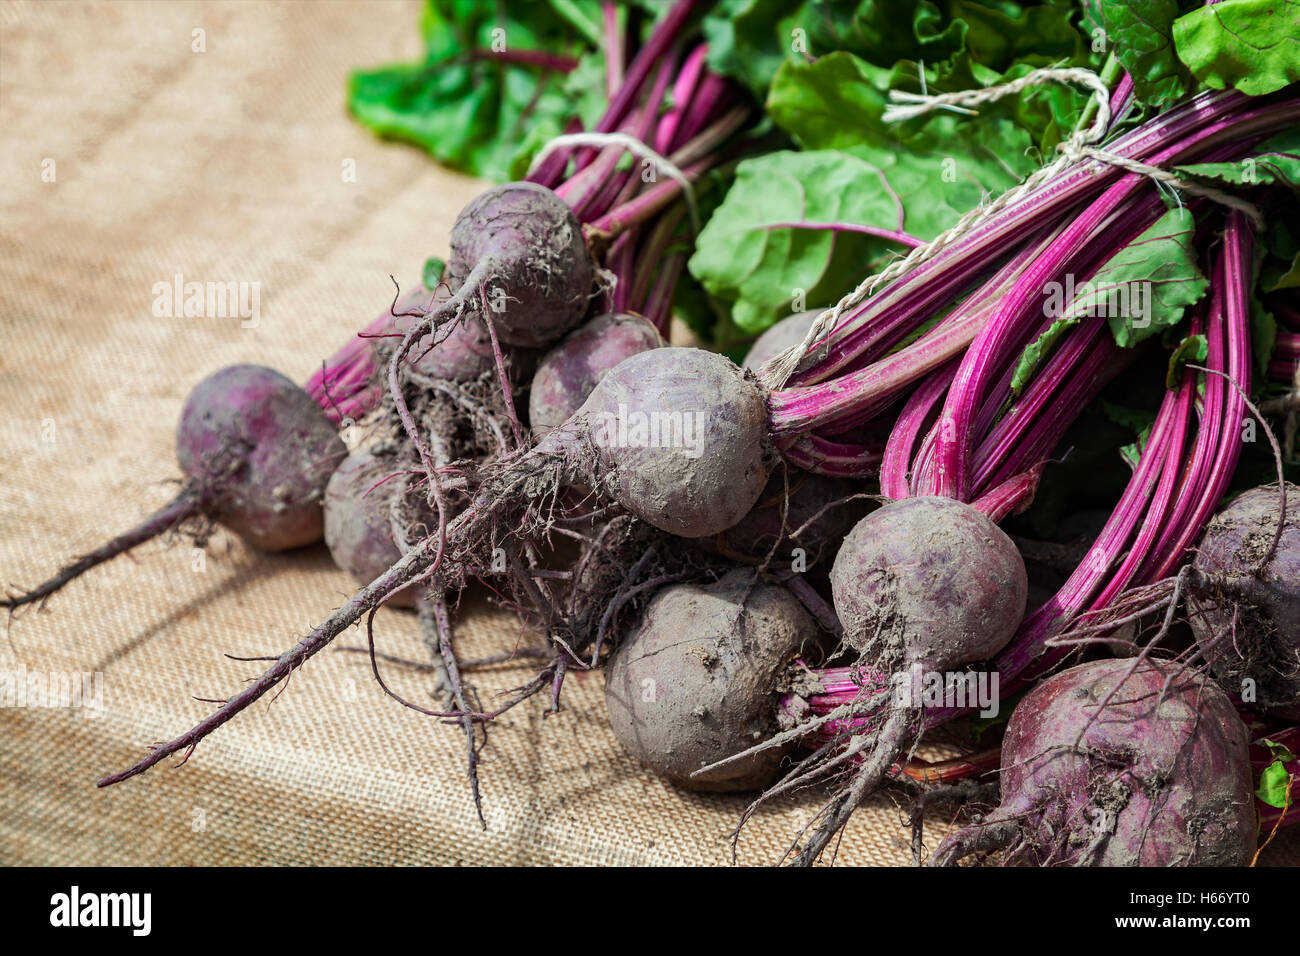 Image of fresh beetroot at farmers market.l - Stock Image